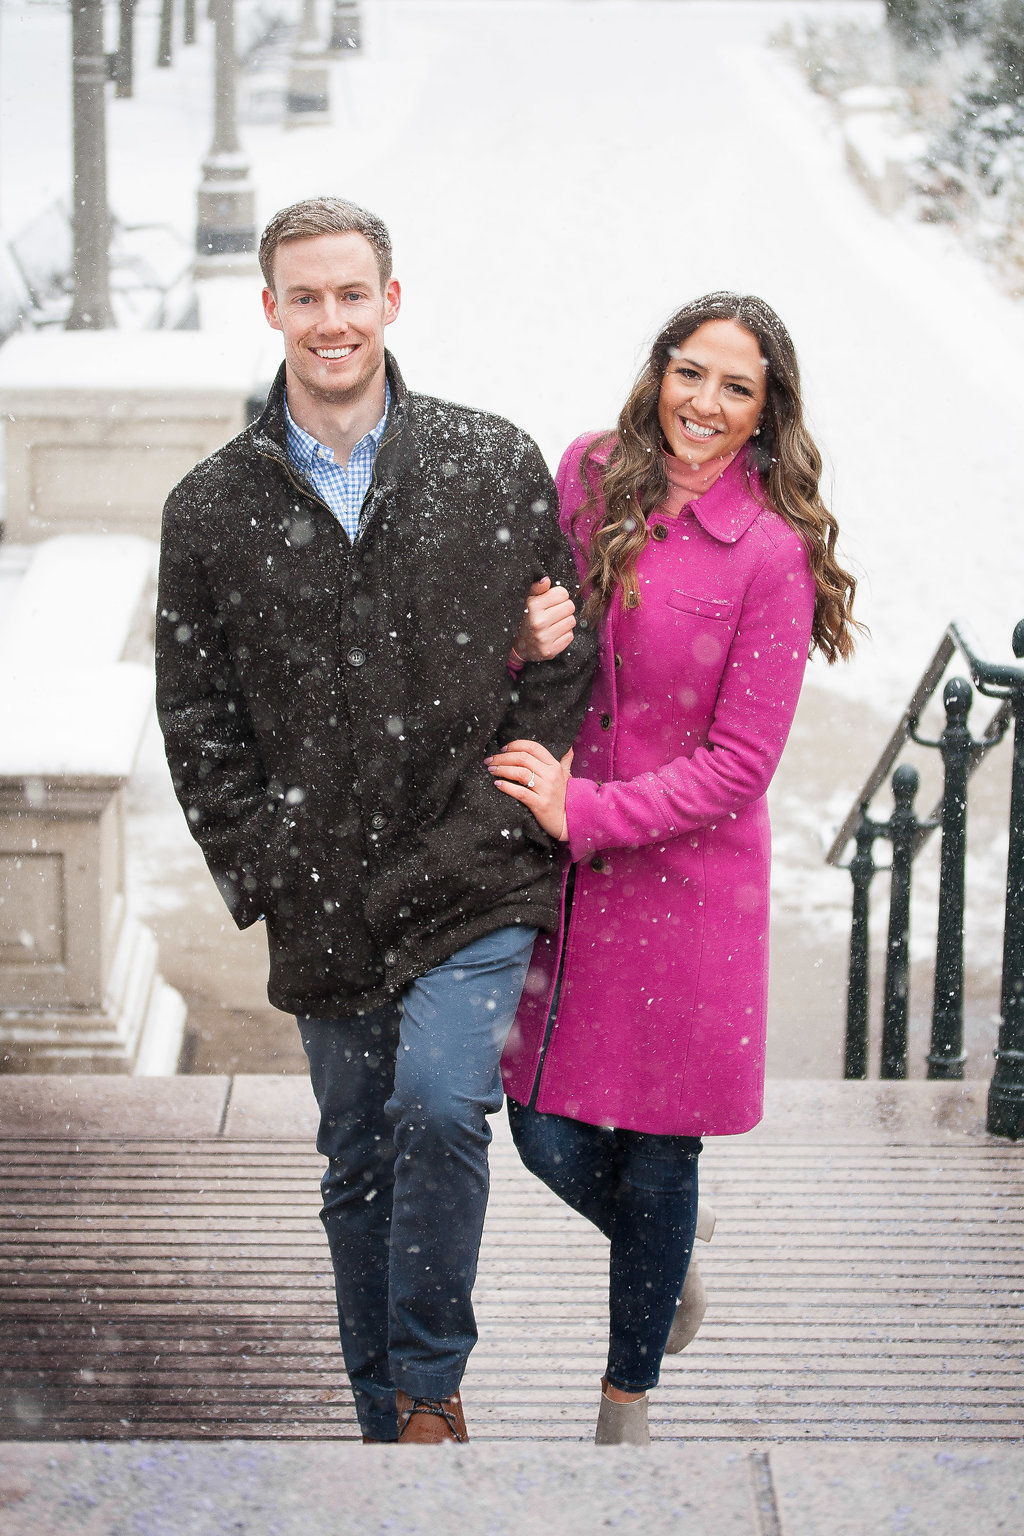 Millennium Park Chicago Illinois Winter Engagement Photographer Taylor Ingles 28